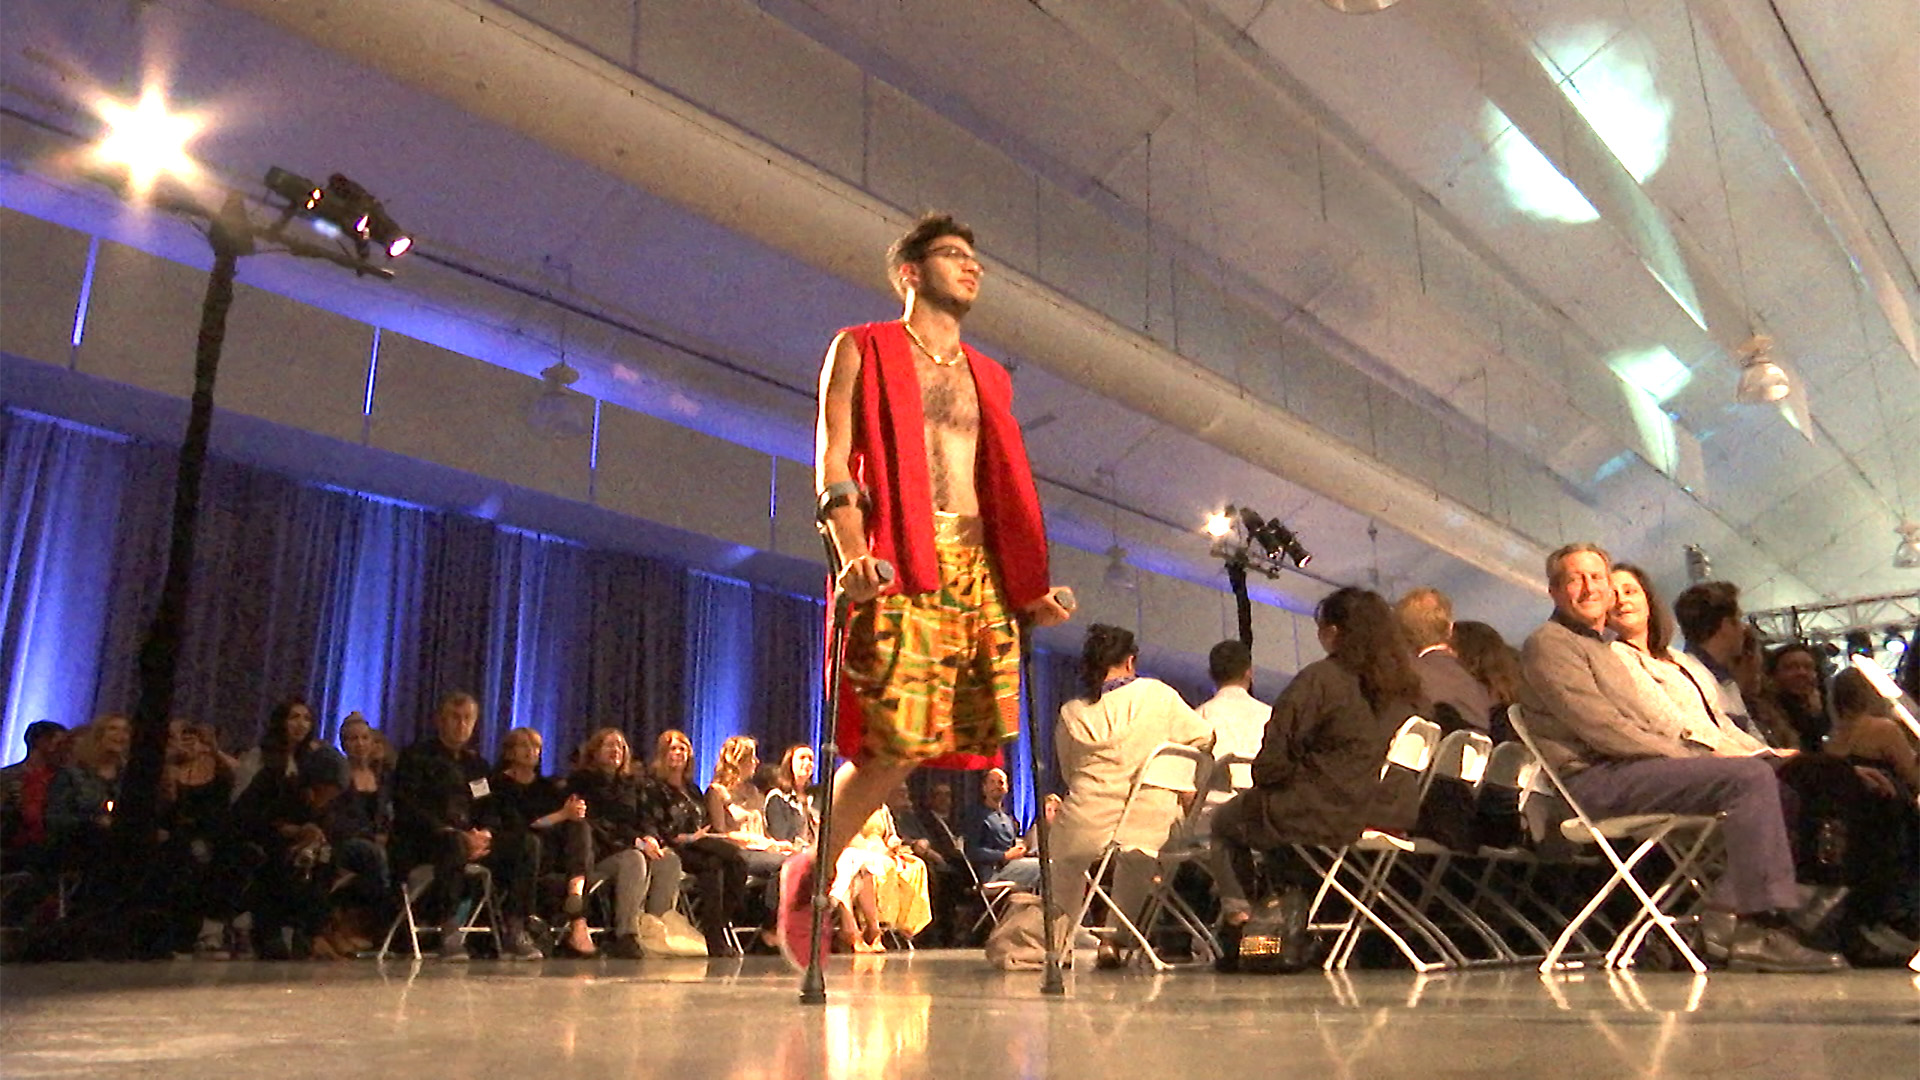 Fashion Students Work With Disabled To Create Garments Designed To Better Their Lives Nbc Bay Area